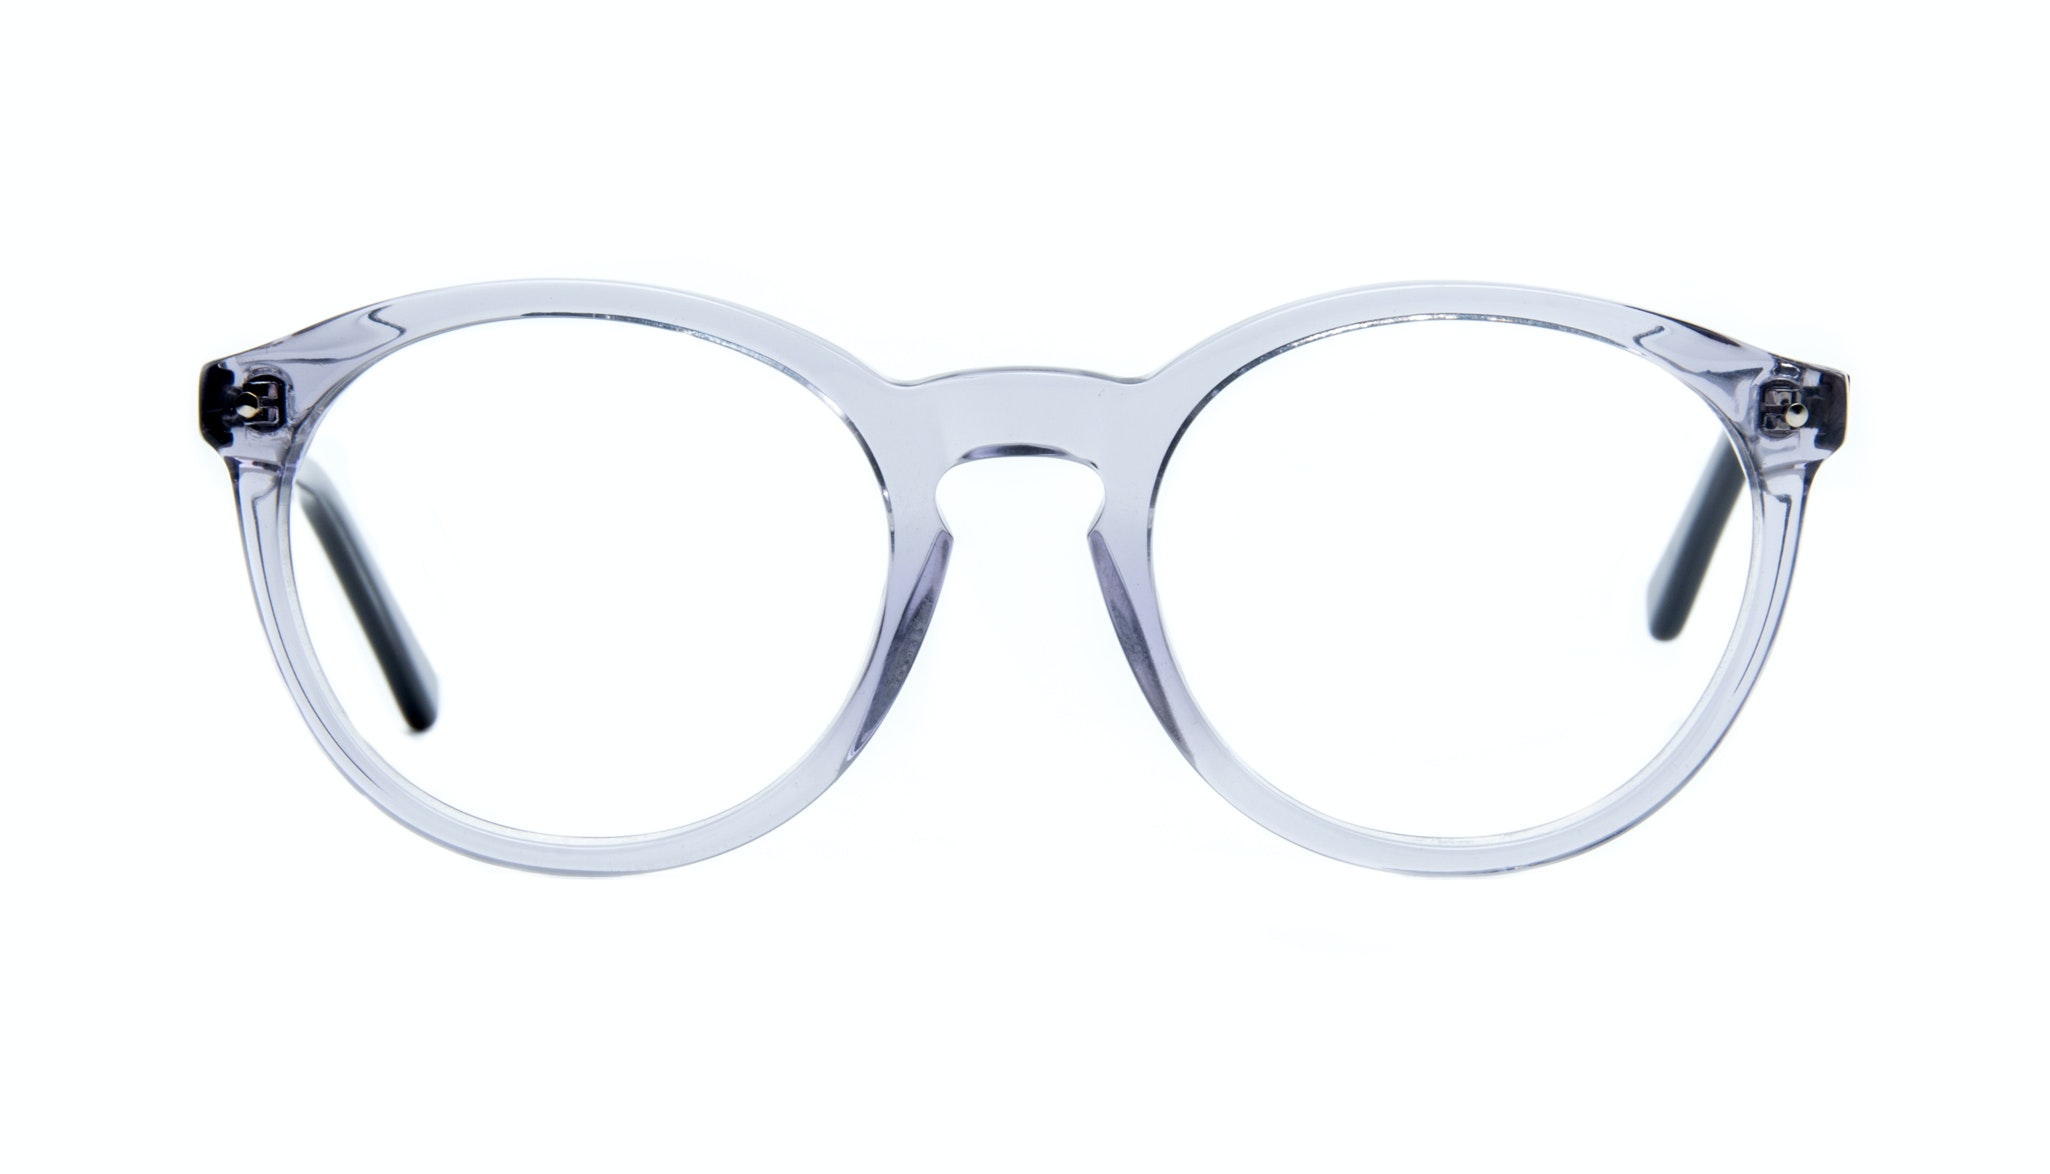 Affordable Fashion Glasses Round Eyeglasses Women Glow Grey Metal